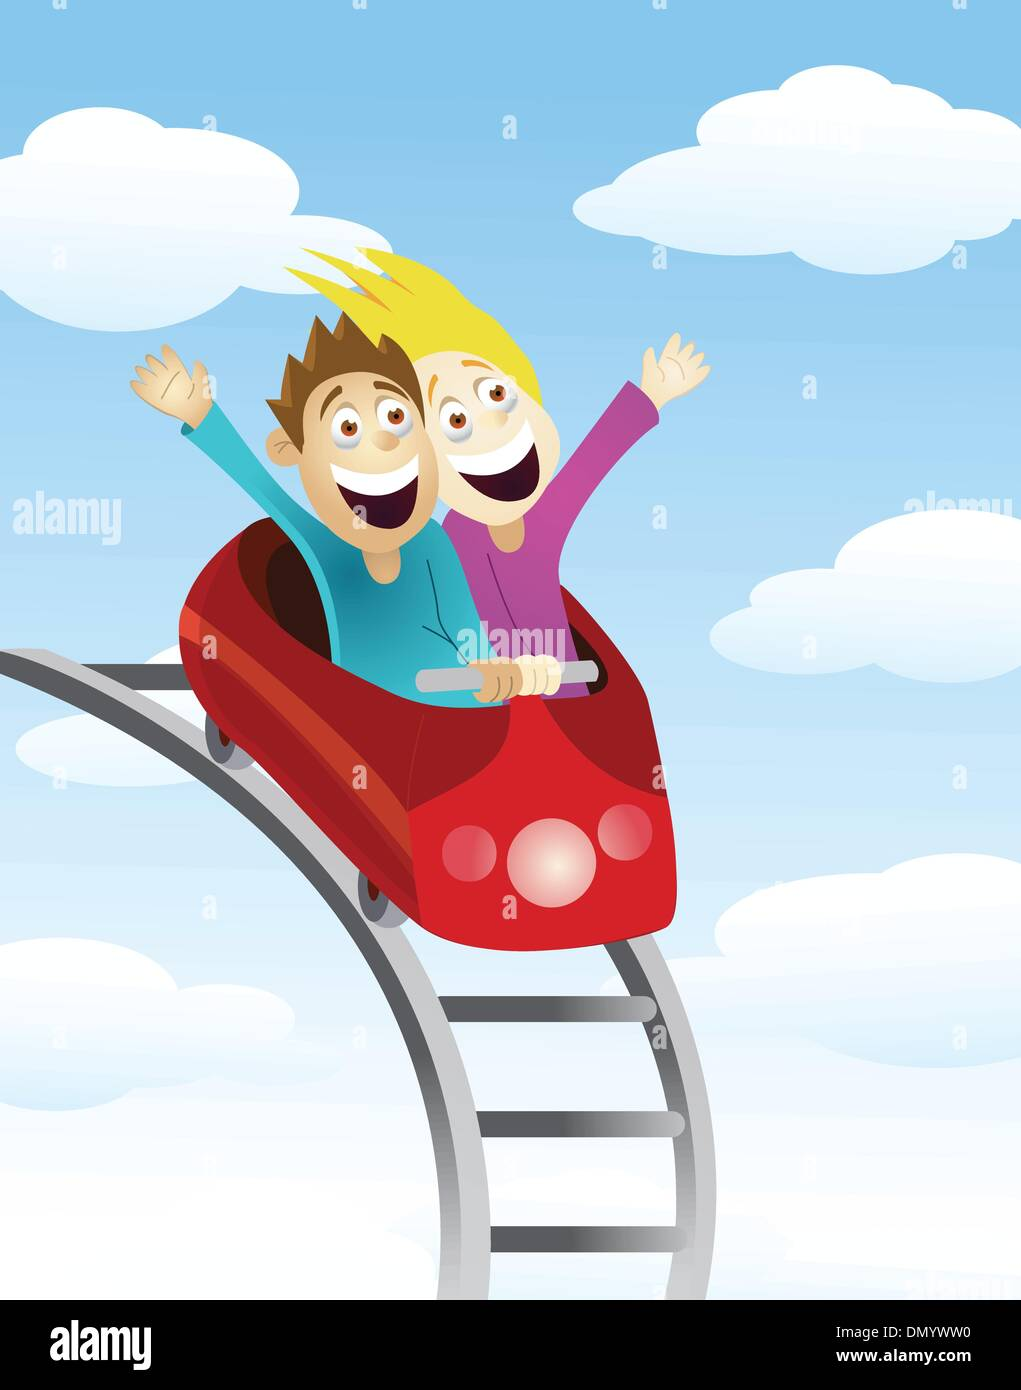 Man and women an a roller coaster - Stock Vector